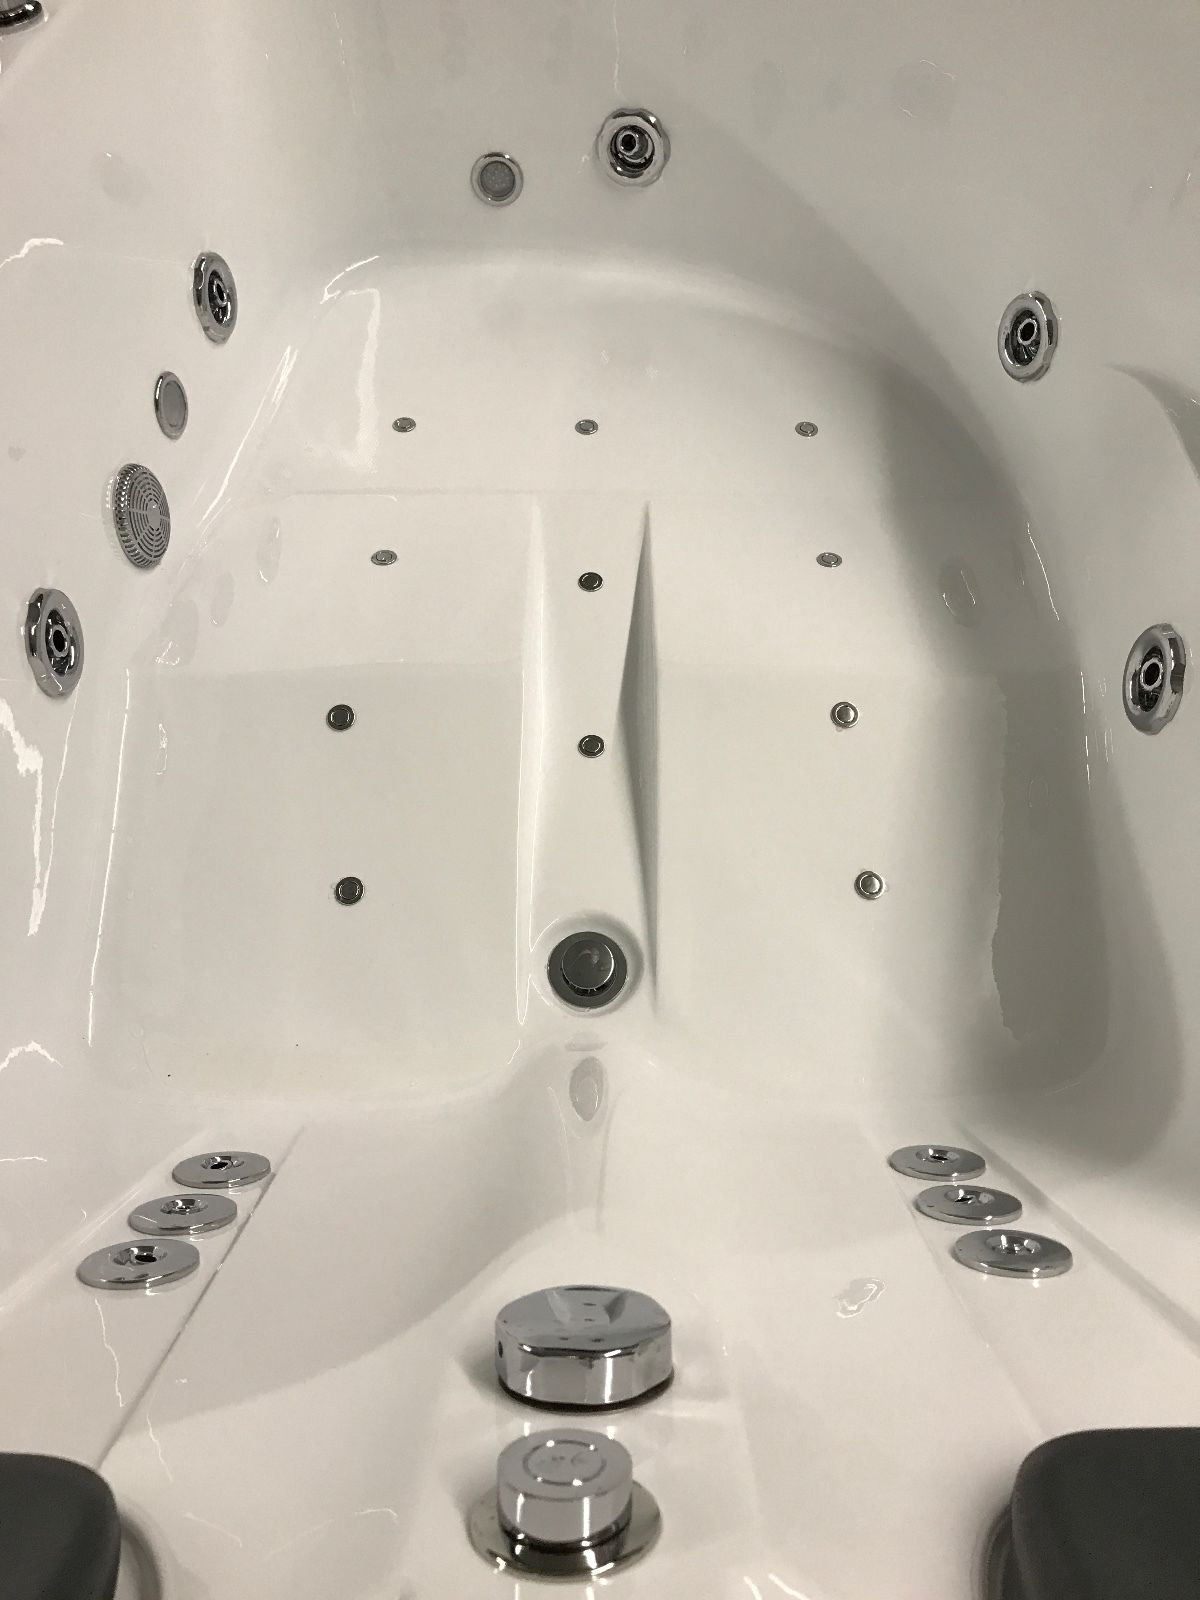 2 PERSON JETTED BATHTUB w/Air Jets,heater C022 - BEST for BATH